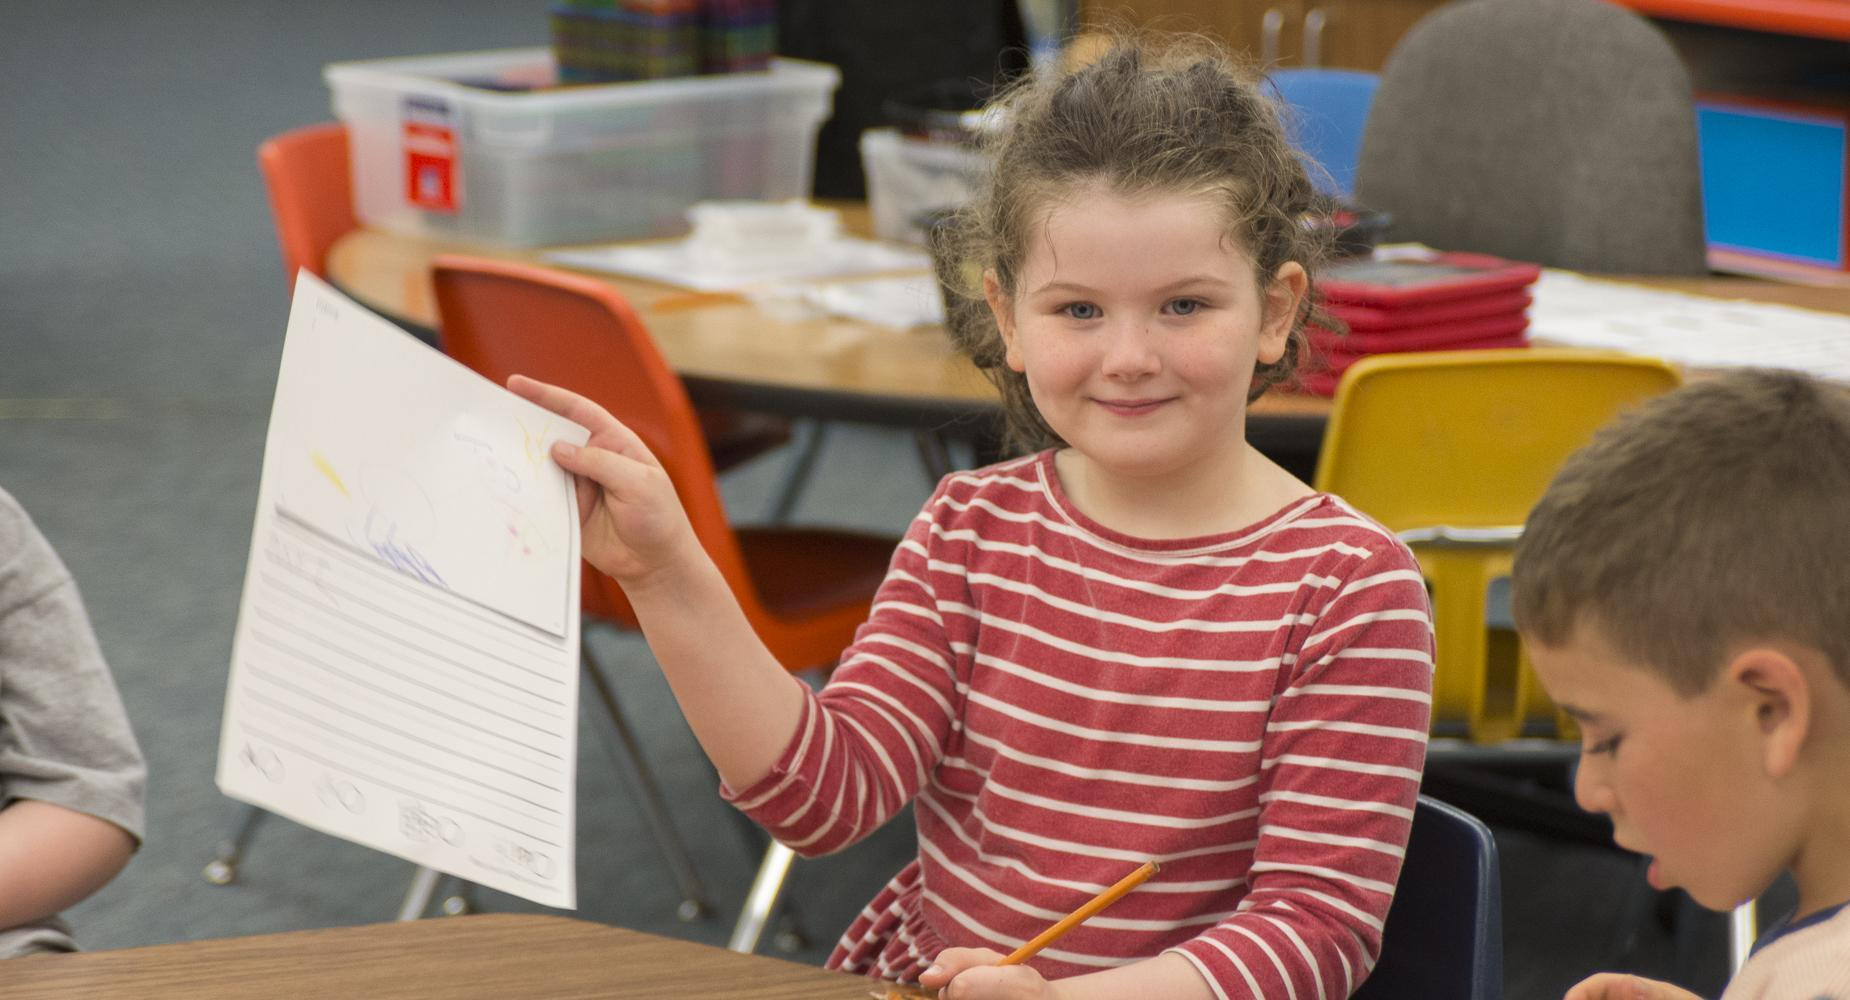 Girl holds up worksheet and smiles.